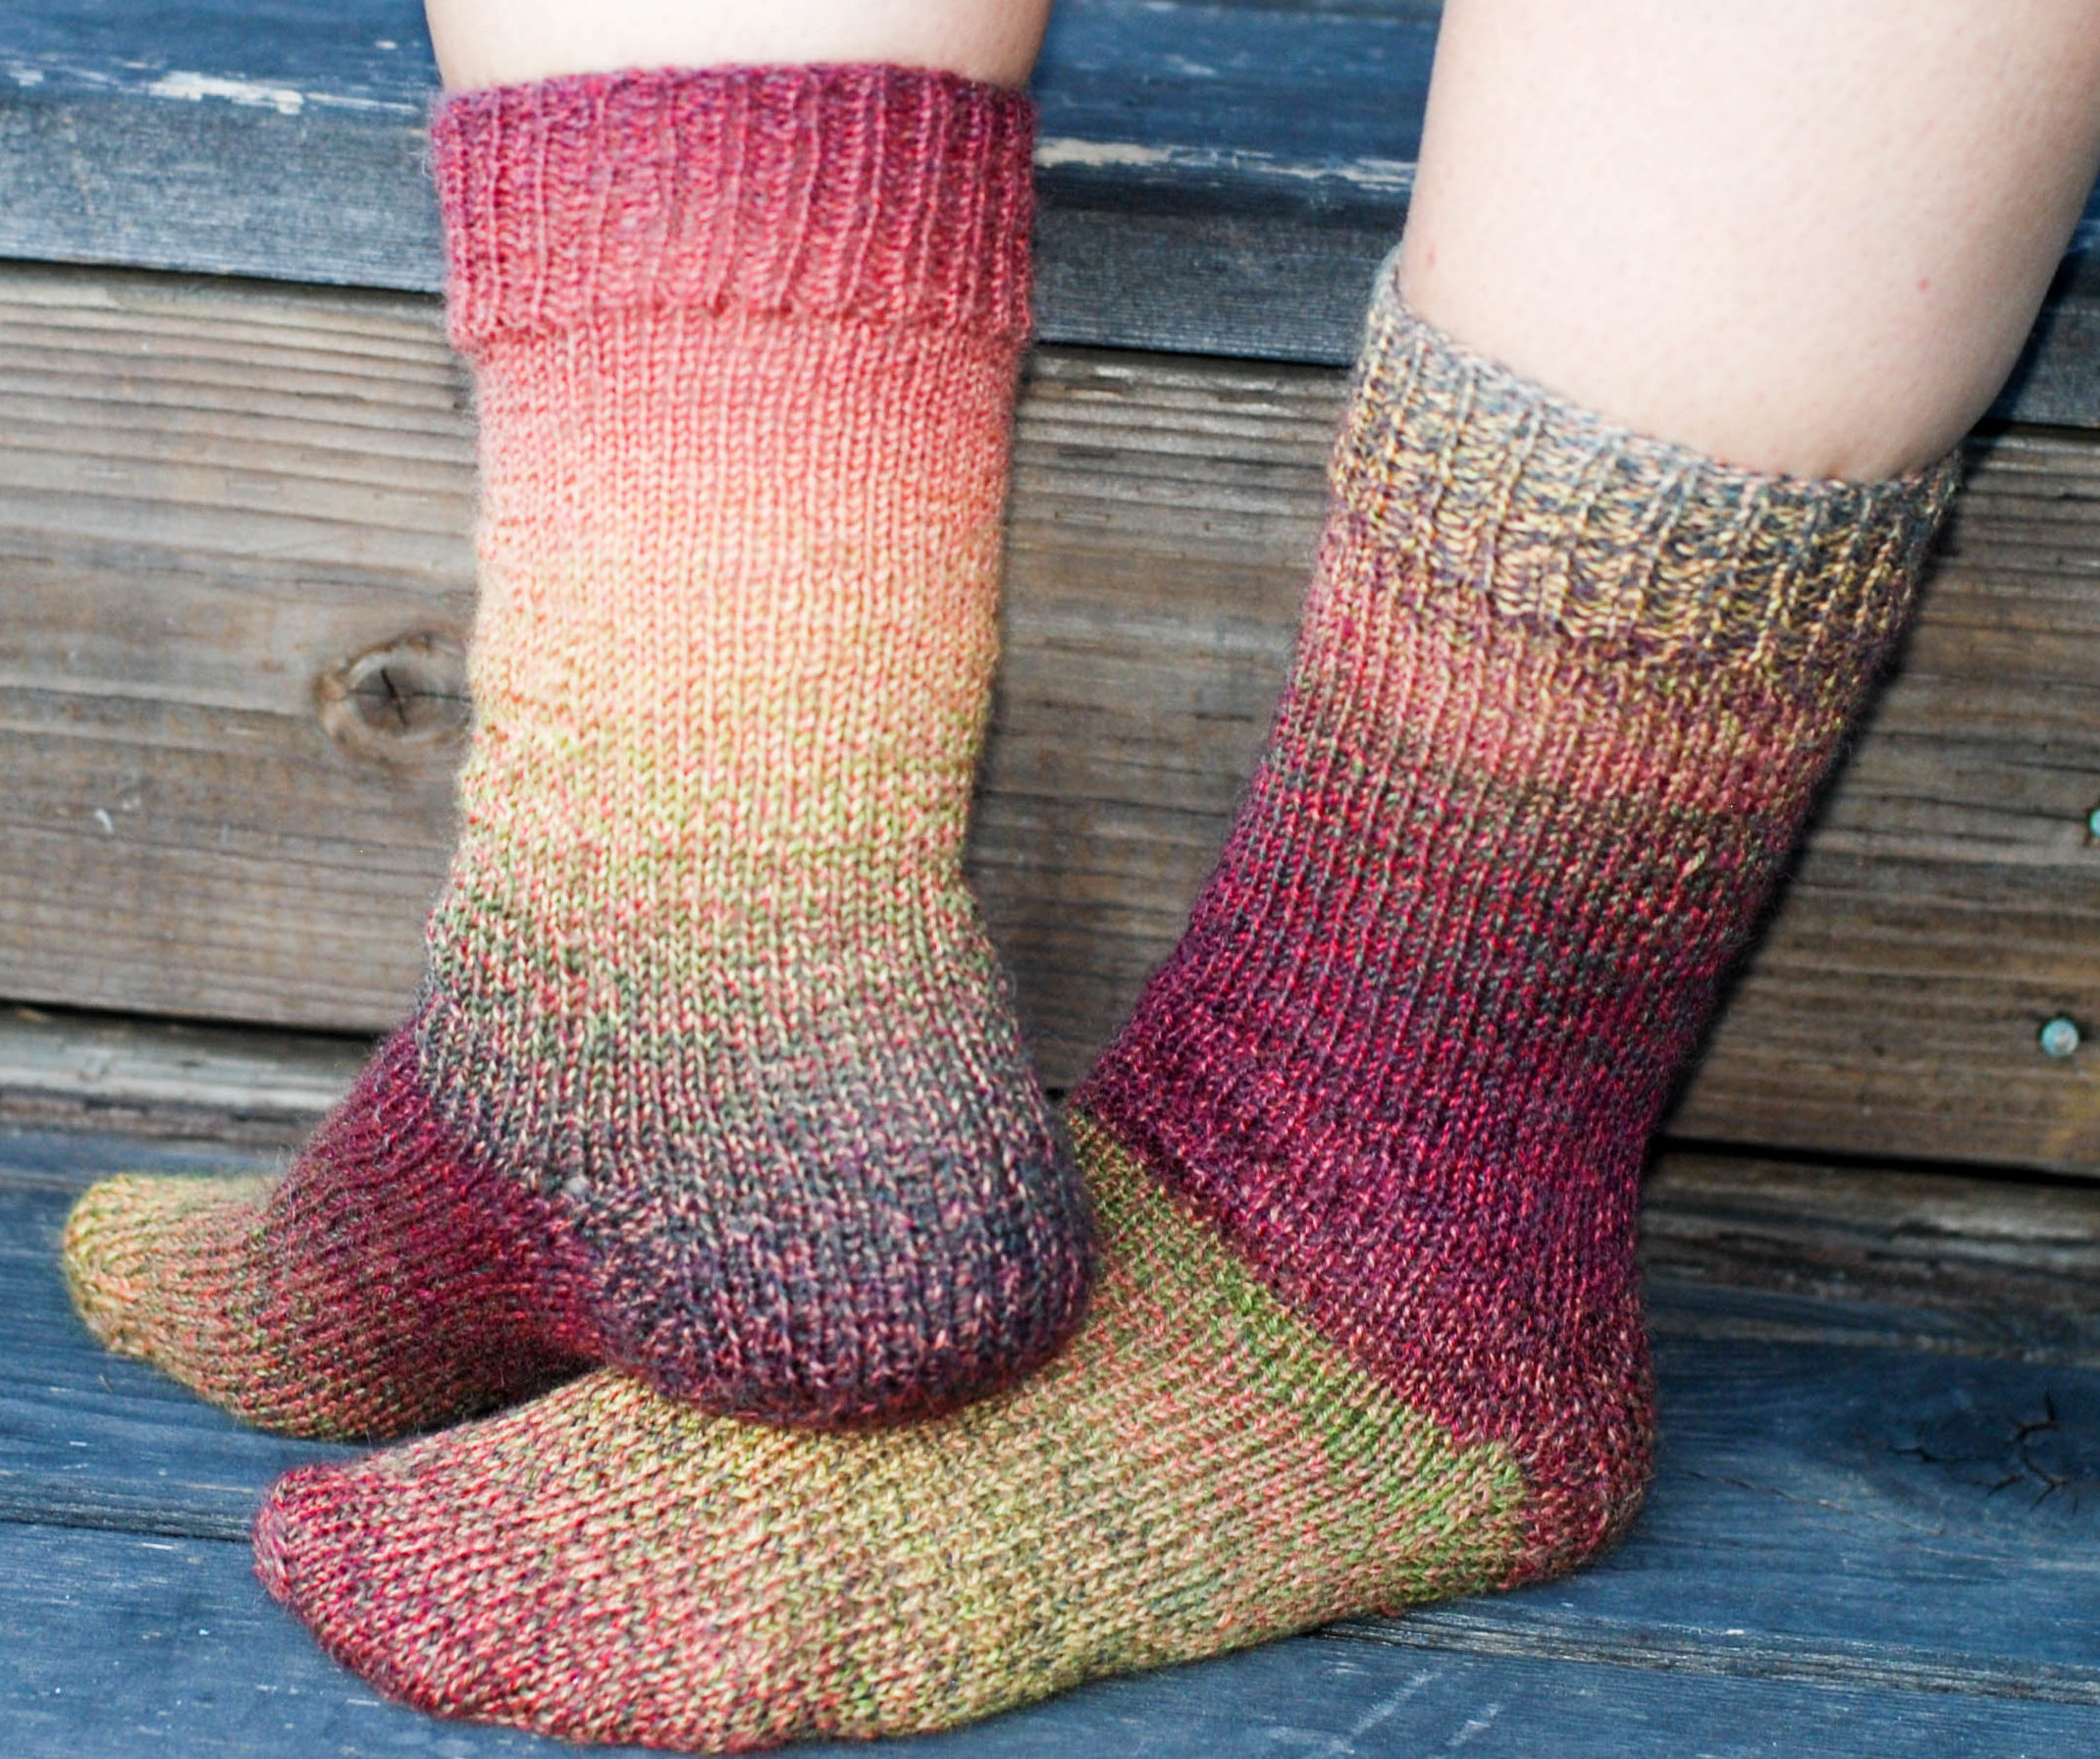 Picking Up Stitches In Knitting Socks : The Camping Socks - This Knitted Life